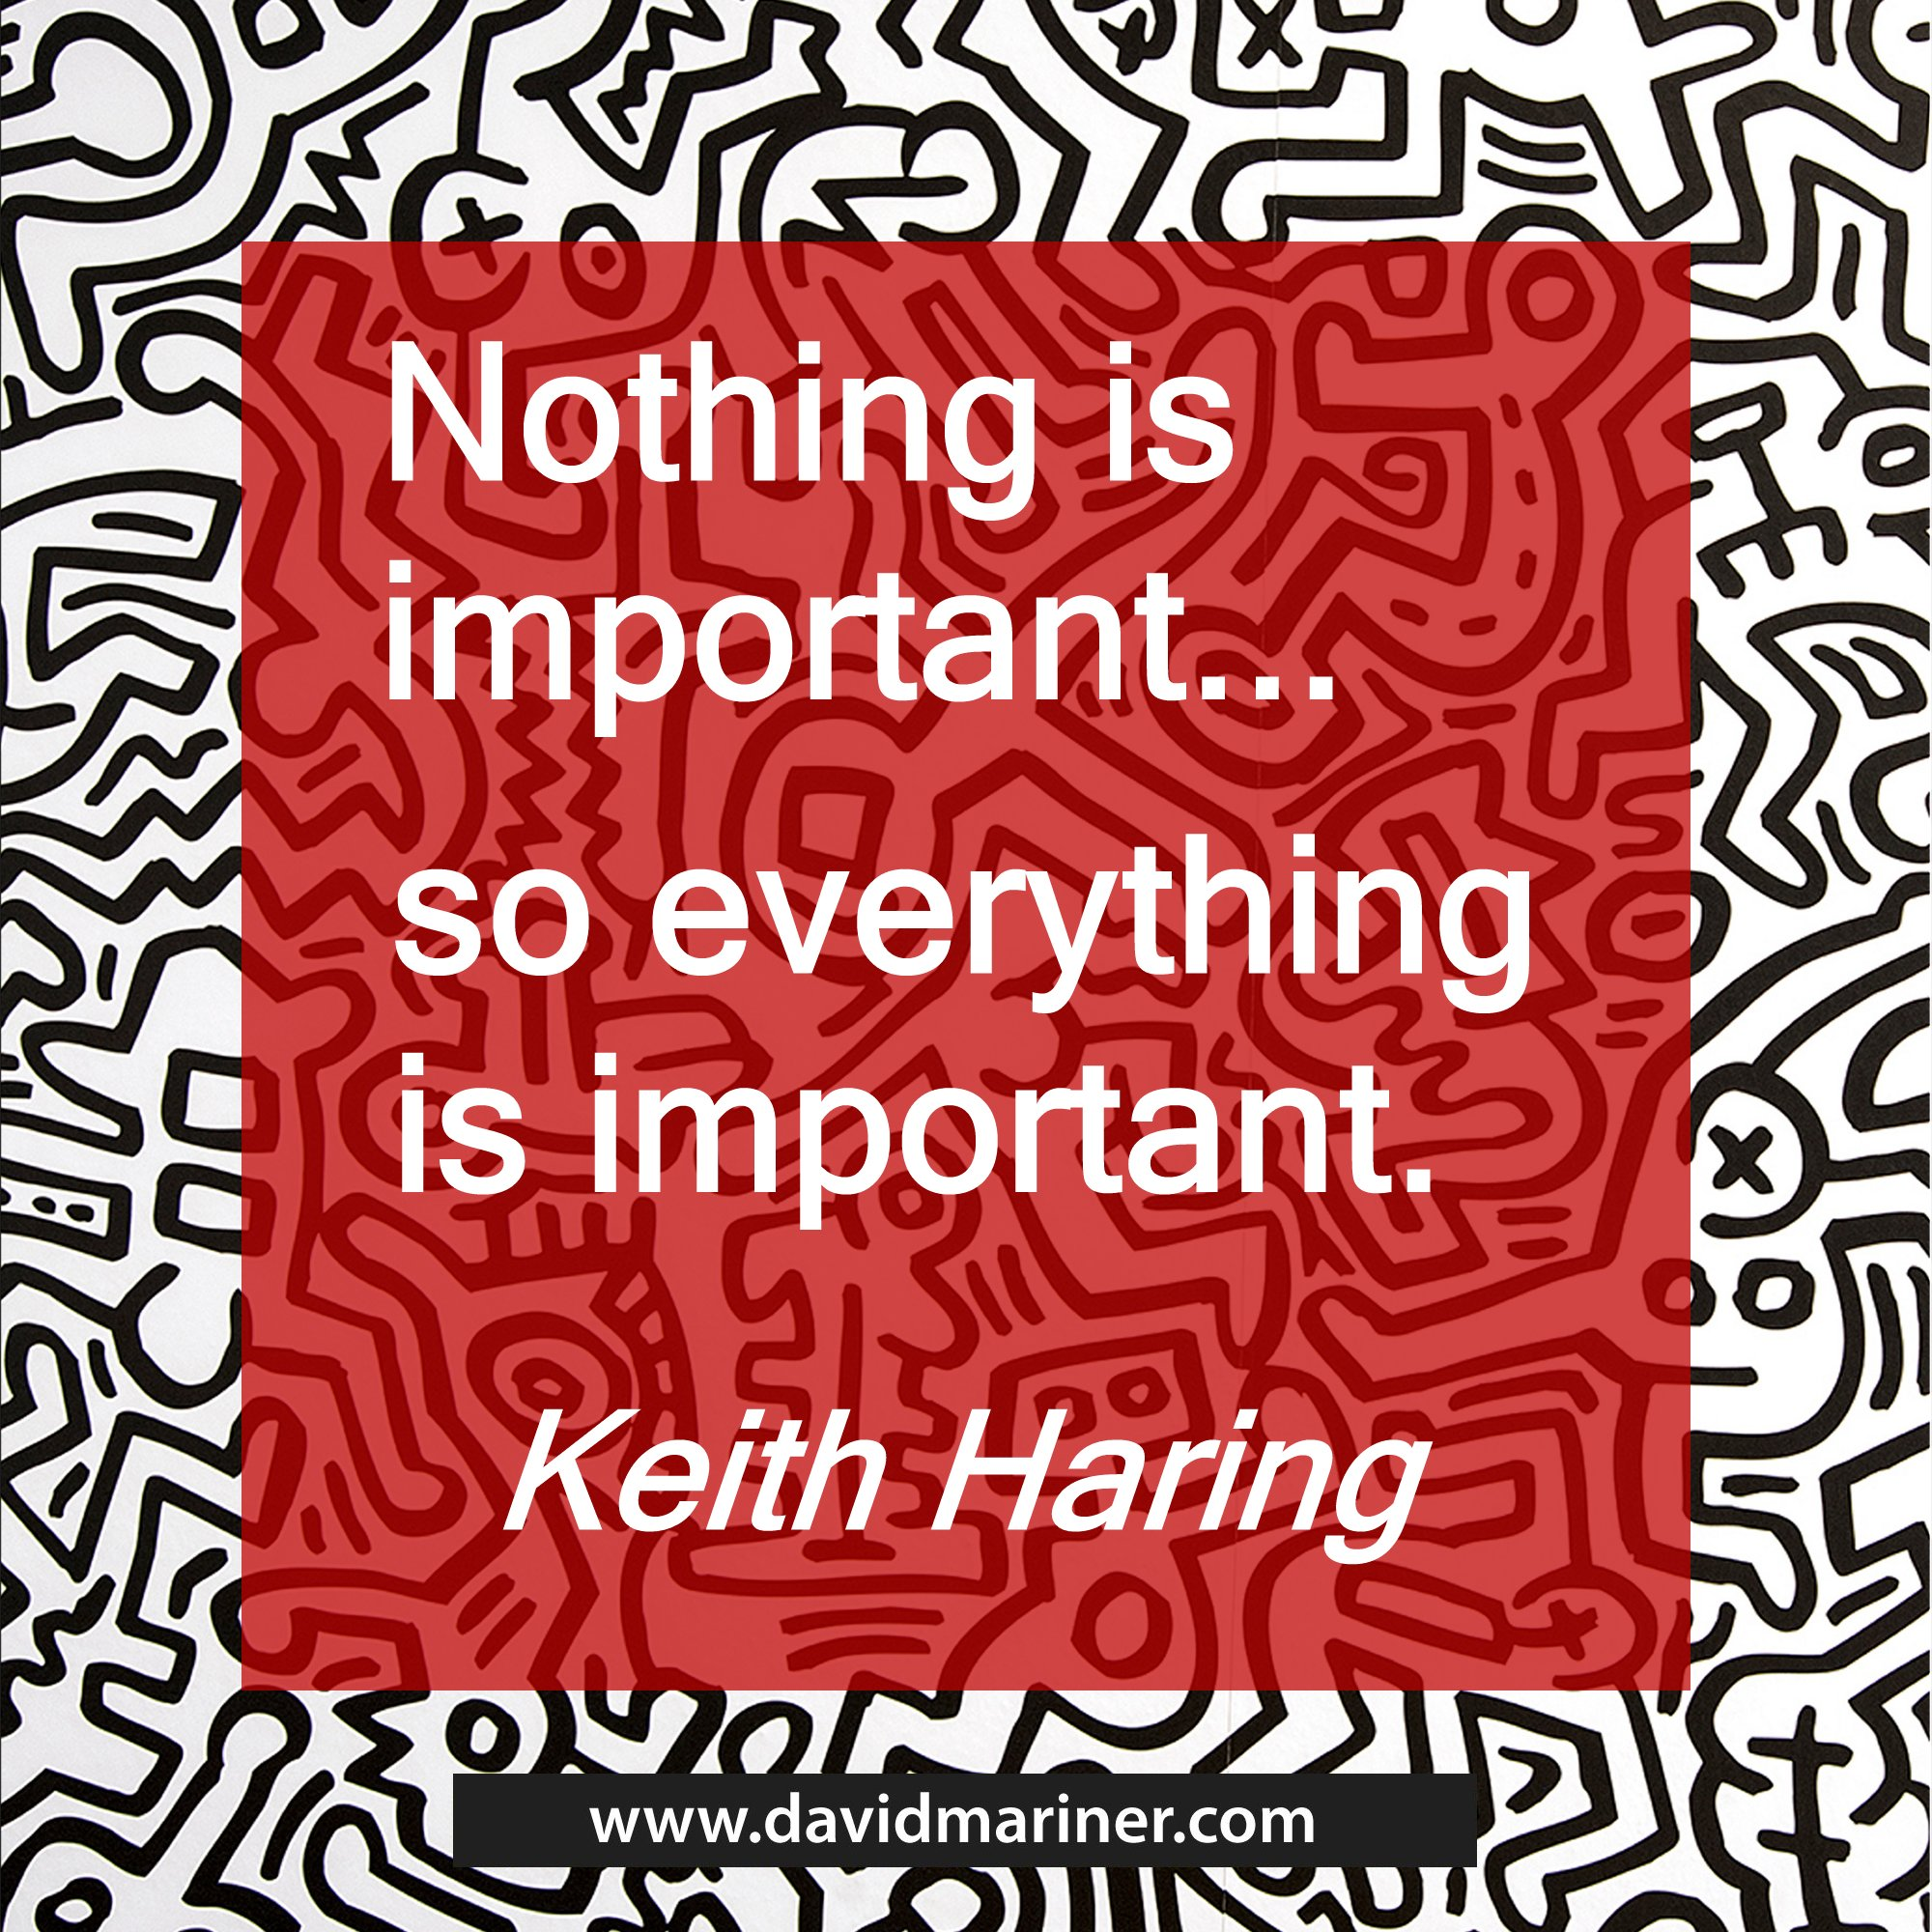 Nothing is important .... so everything is important. - Keith Haring